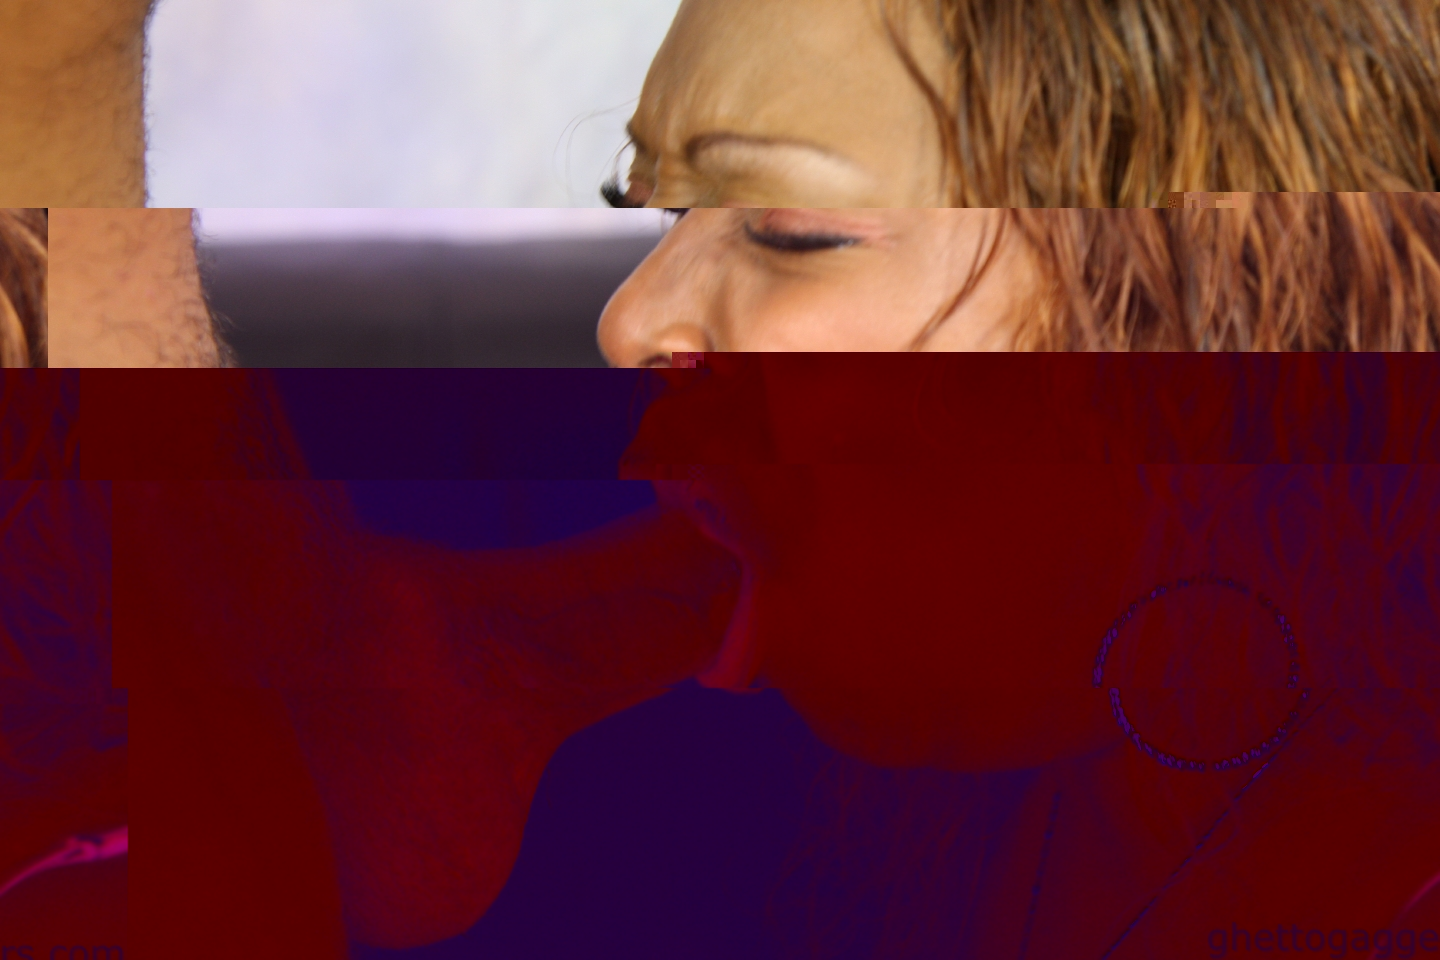 ebony ghetto porn